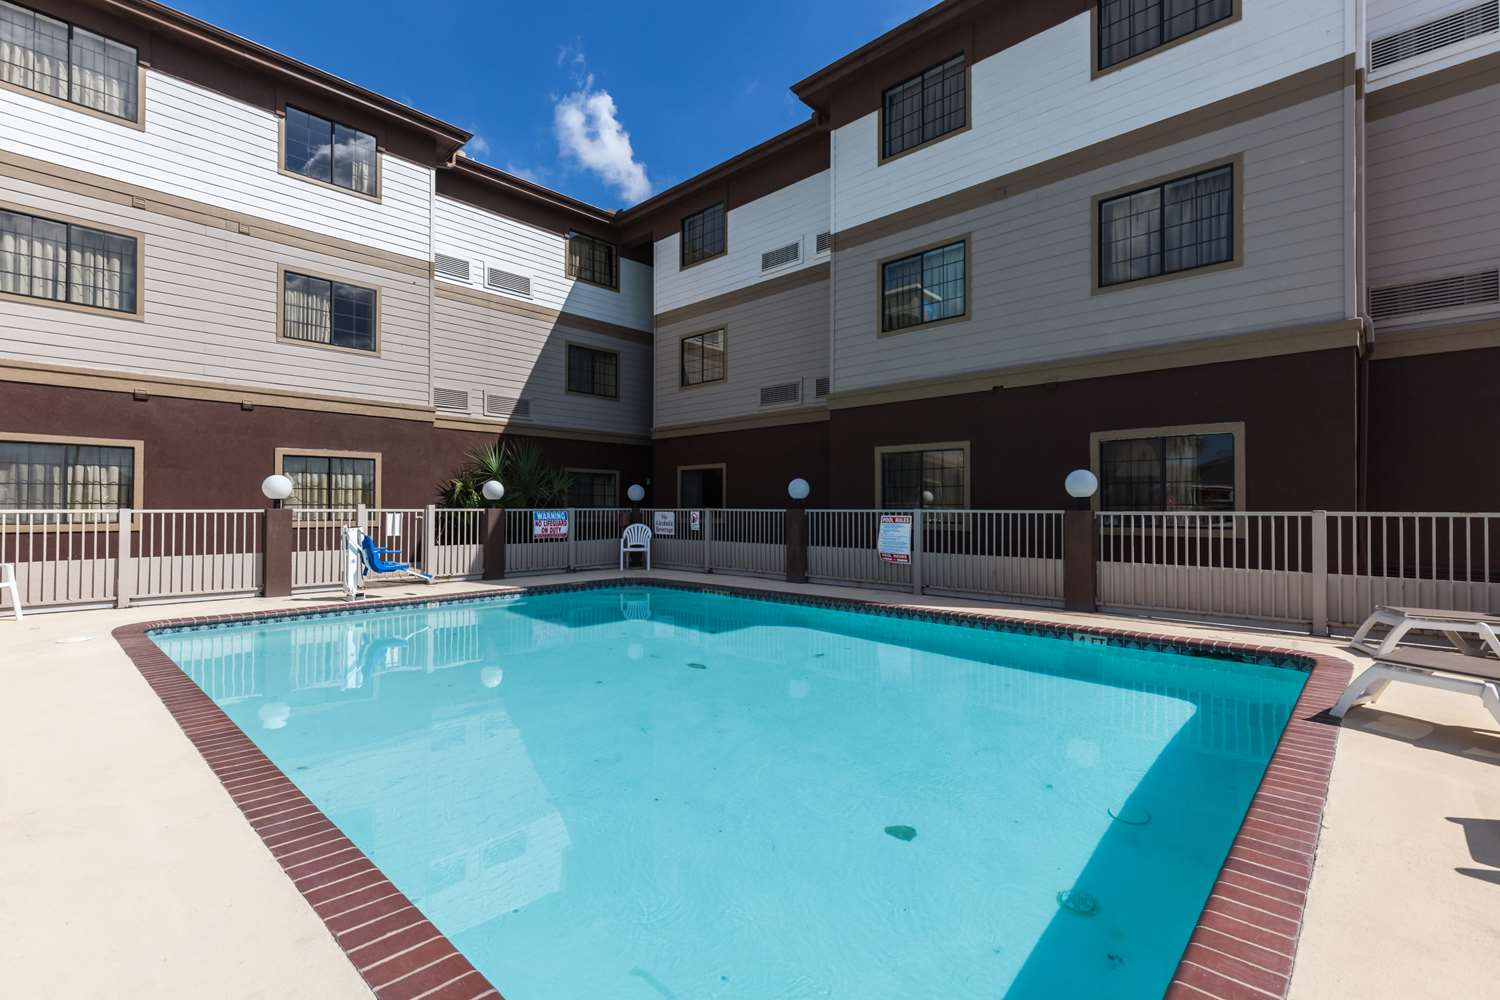 Studio 6 Extended Stay Hotel Port Arthur Tx See Discounts